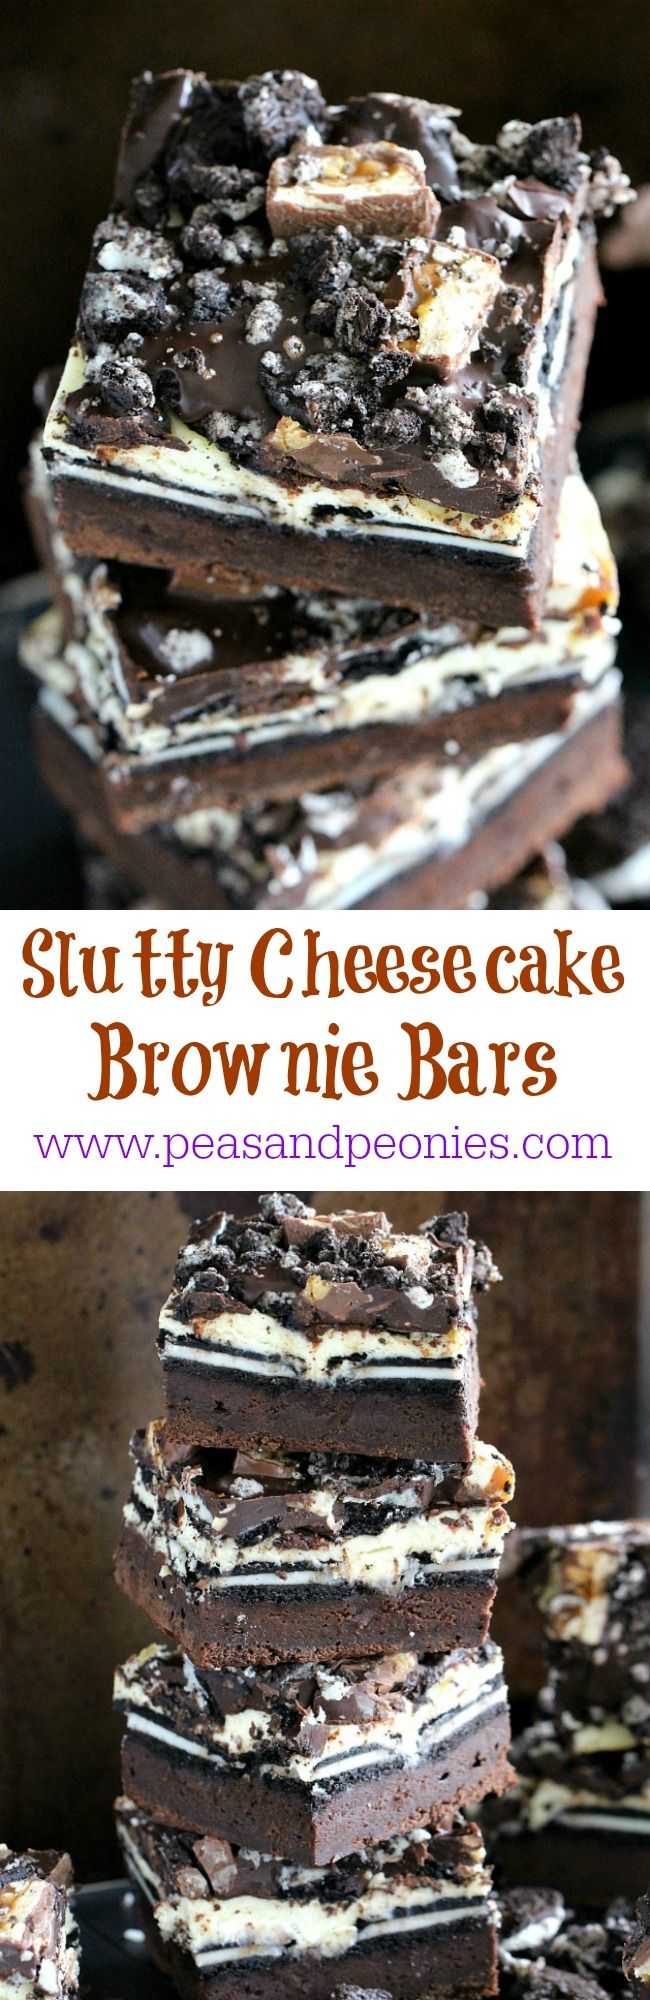 Slutty Cheesecake Brownie Bars made with a layer of fudgy brownie, Oreos, cheesecake, chocolate ganache and chopped Snickers bars.